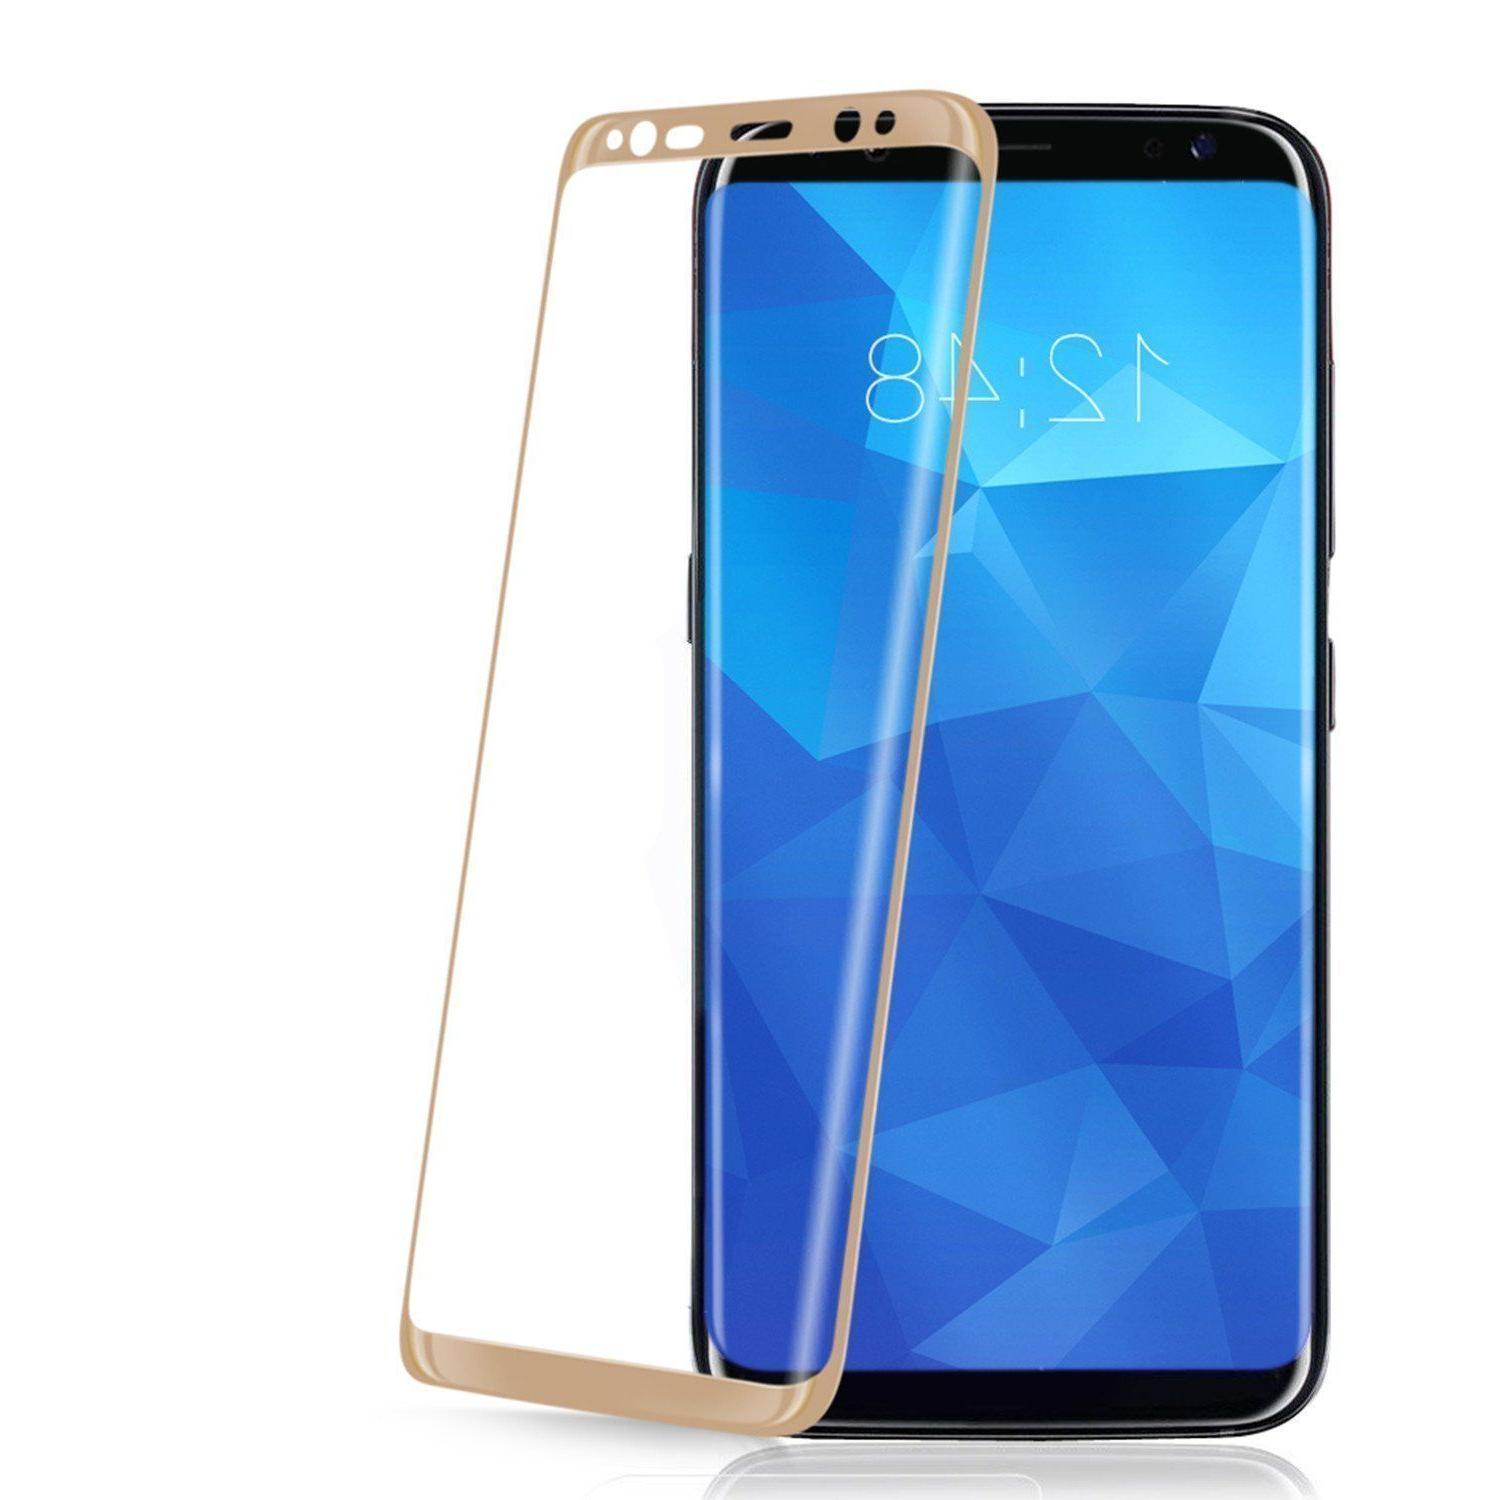 Samsung S9 Plus Note 8 9 Full Cover 4D Glass Screen